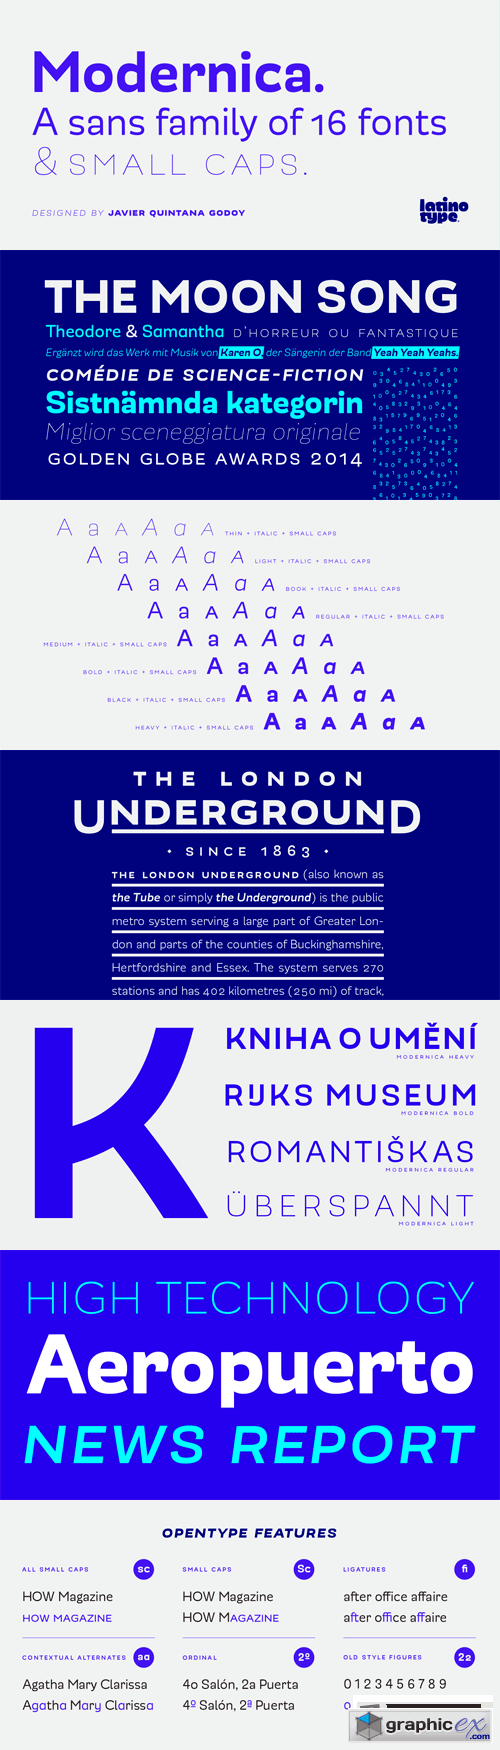 Modernica Font Family - 16 Fonts for $189